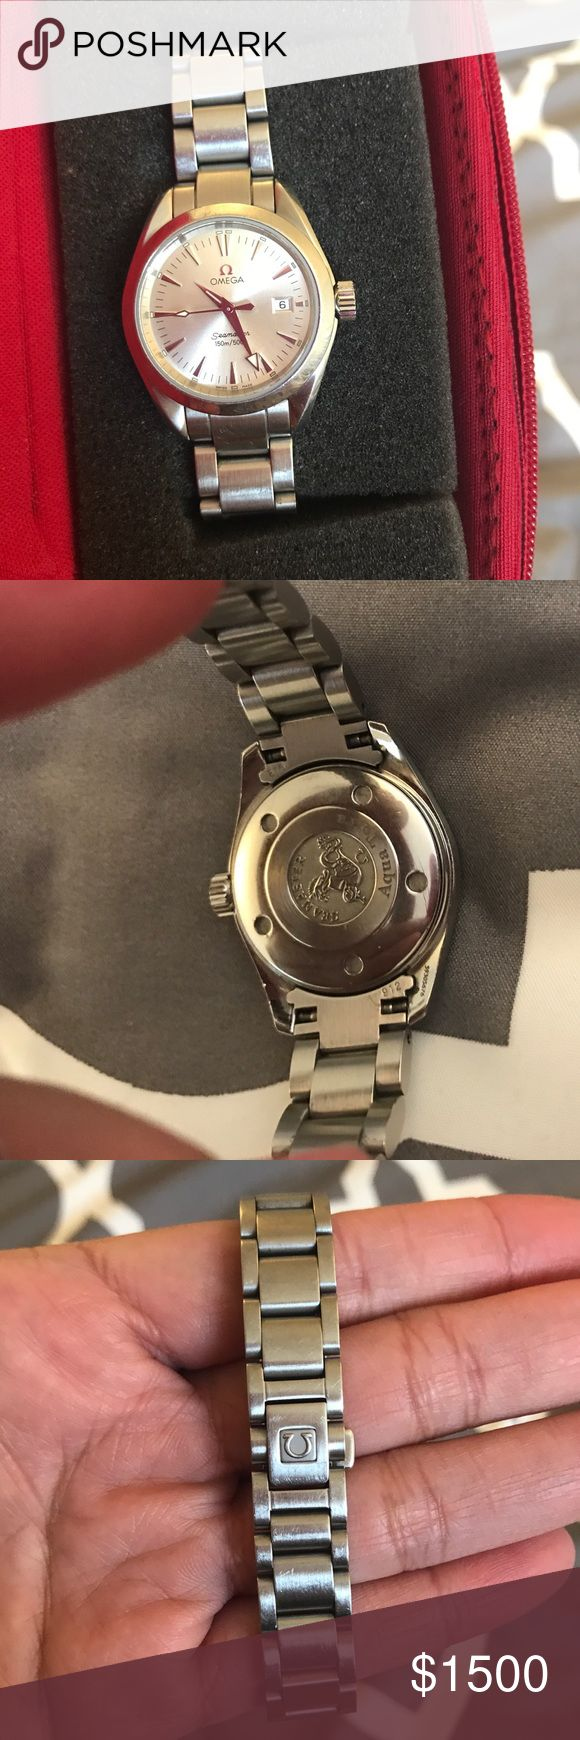 ✅SALE✅ Authentic Omega Ladies Watch I just recently had this checked by my local jeweler in California (10/7/17). The battery was newly replaced because the previous one installed was weak. Good working condition. Can provide a video via email or text with current date to show the movement. Very classy piece. Trade value higher. Comes with Omega red watch case. Omega Accessories Watches